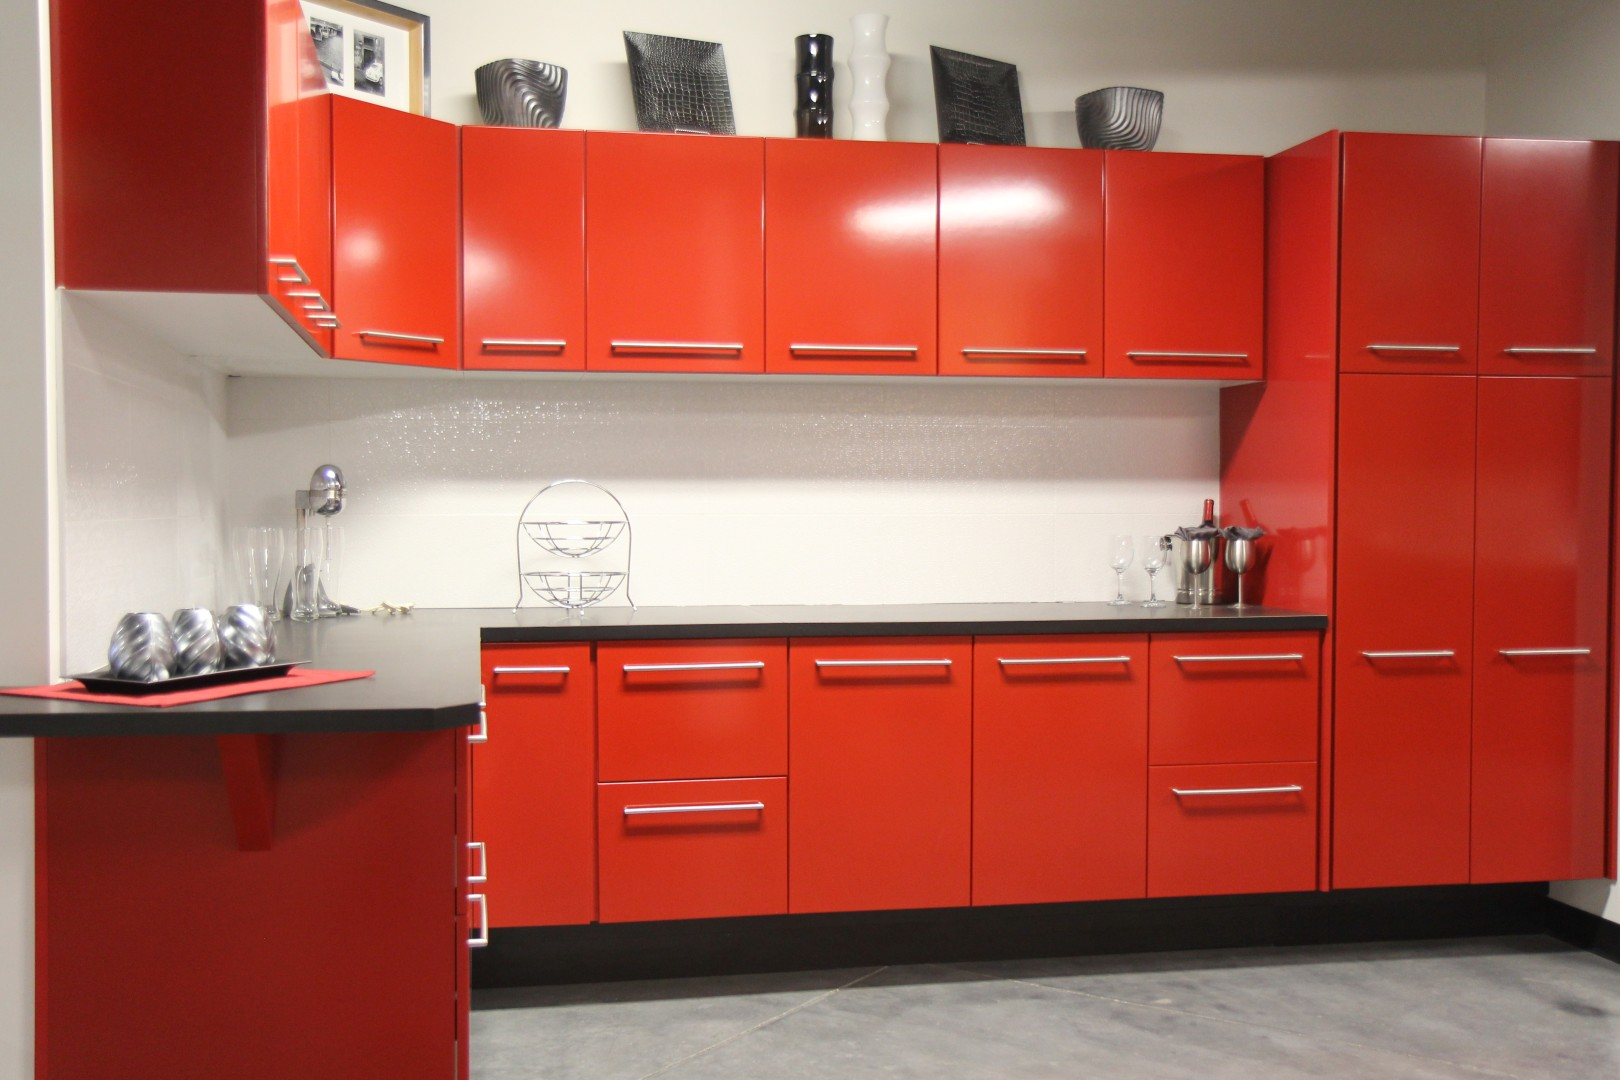 Radiant Interior Kitchen Using Red Cabinet With Pleasant Countertop Decor